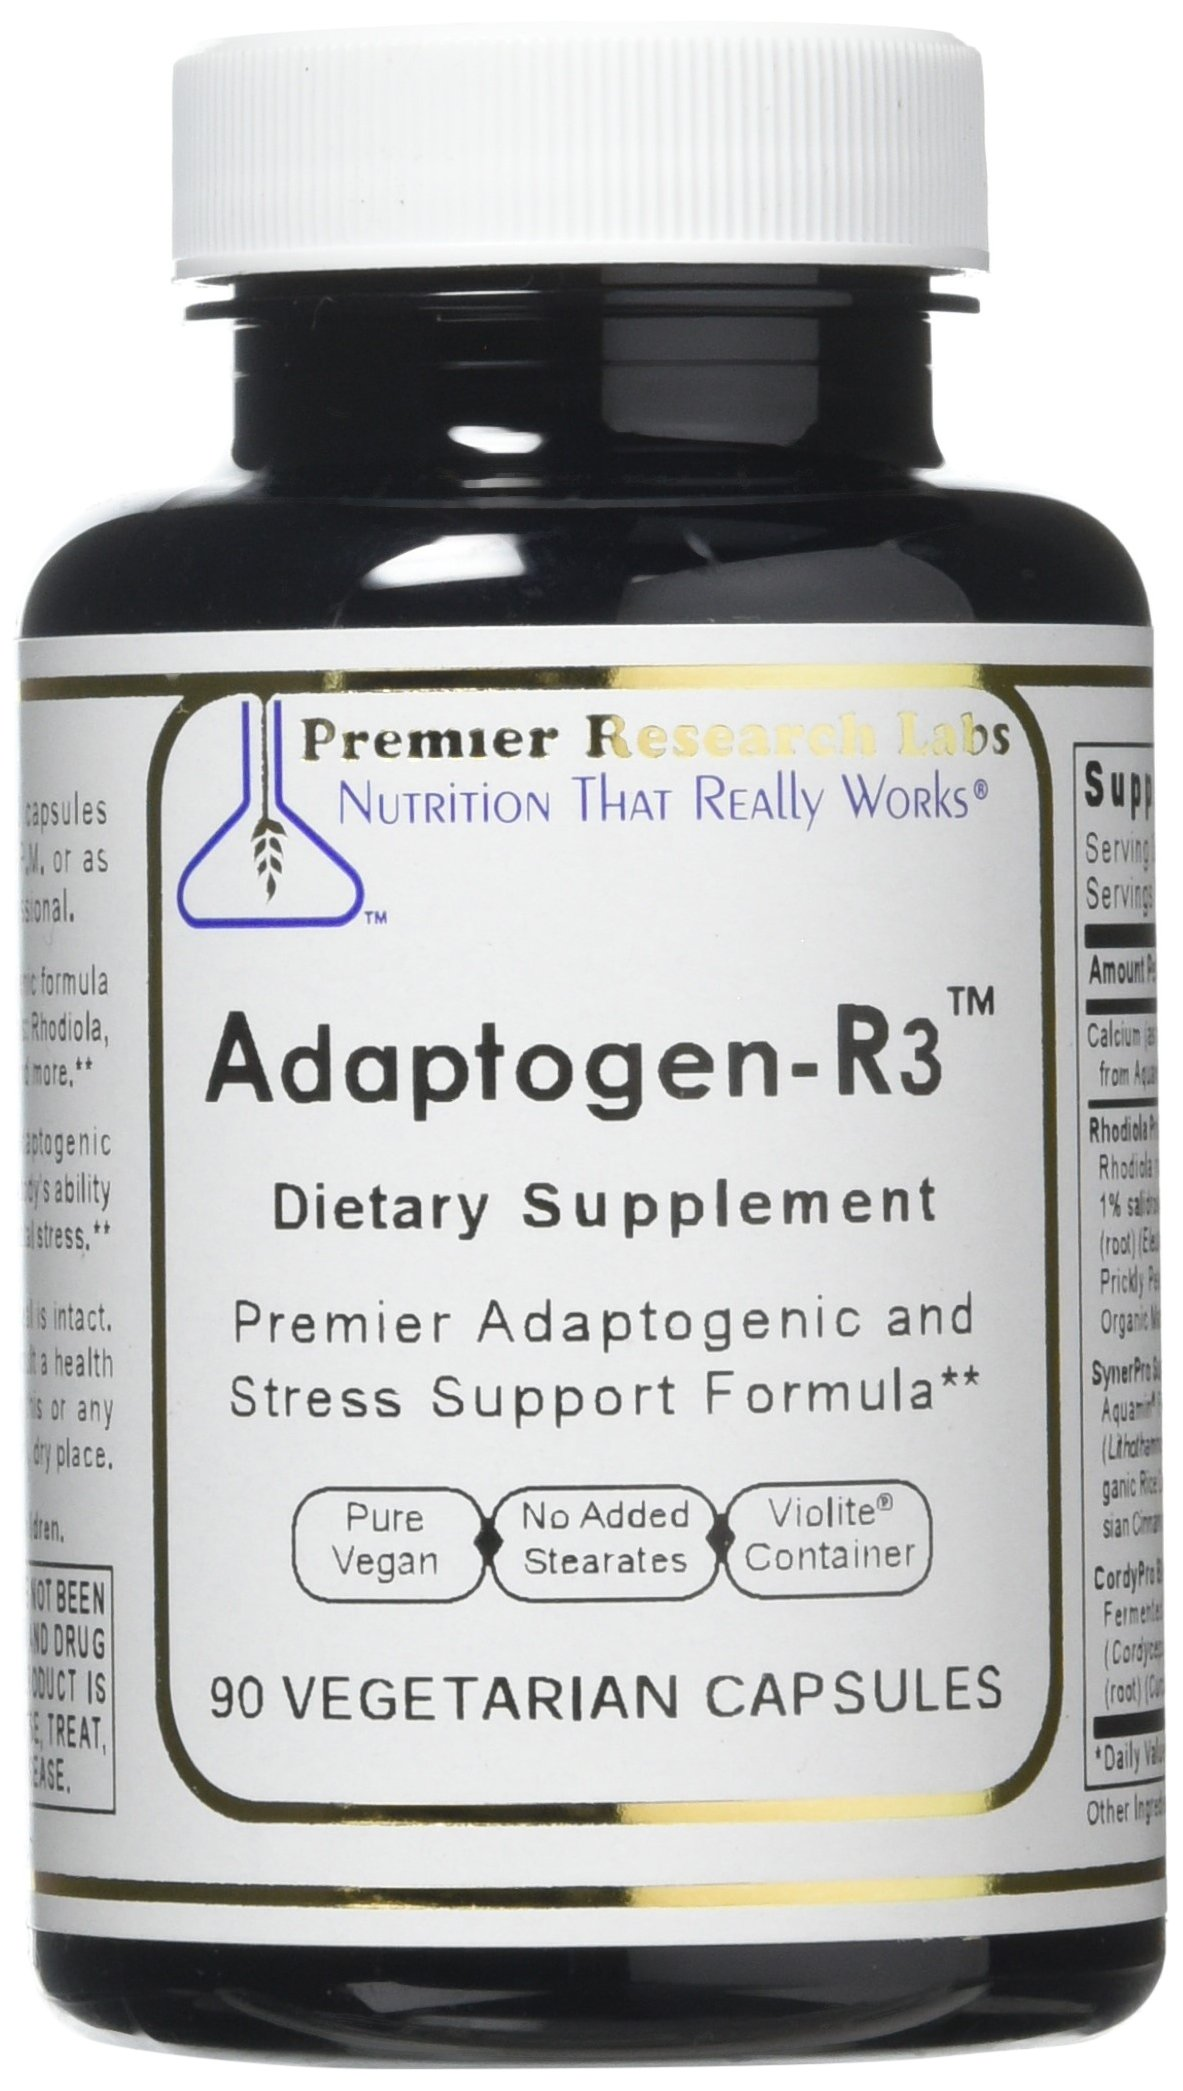 Adaptogen-R3 TM, 90 Capsules, Vegan Product, Premier Adaptogenic and Stress Support Formula